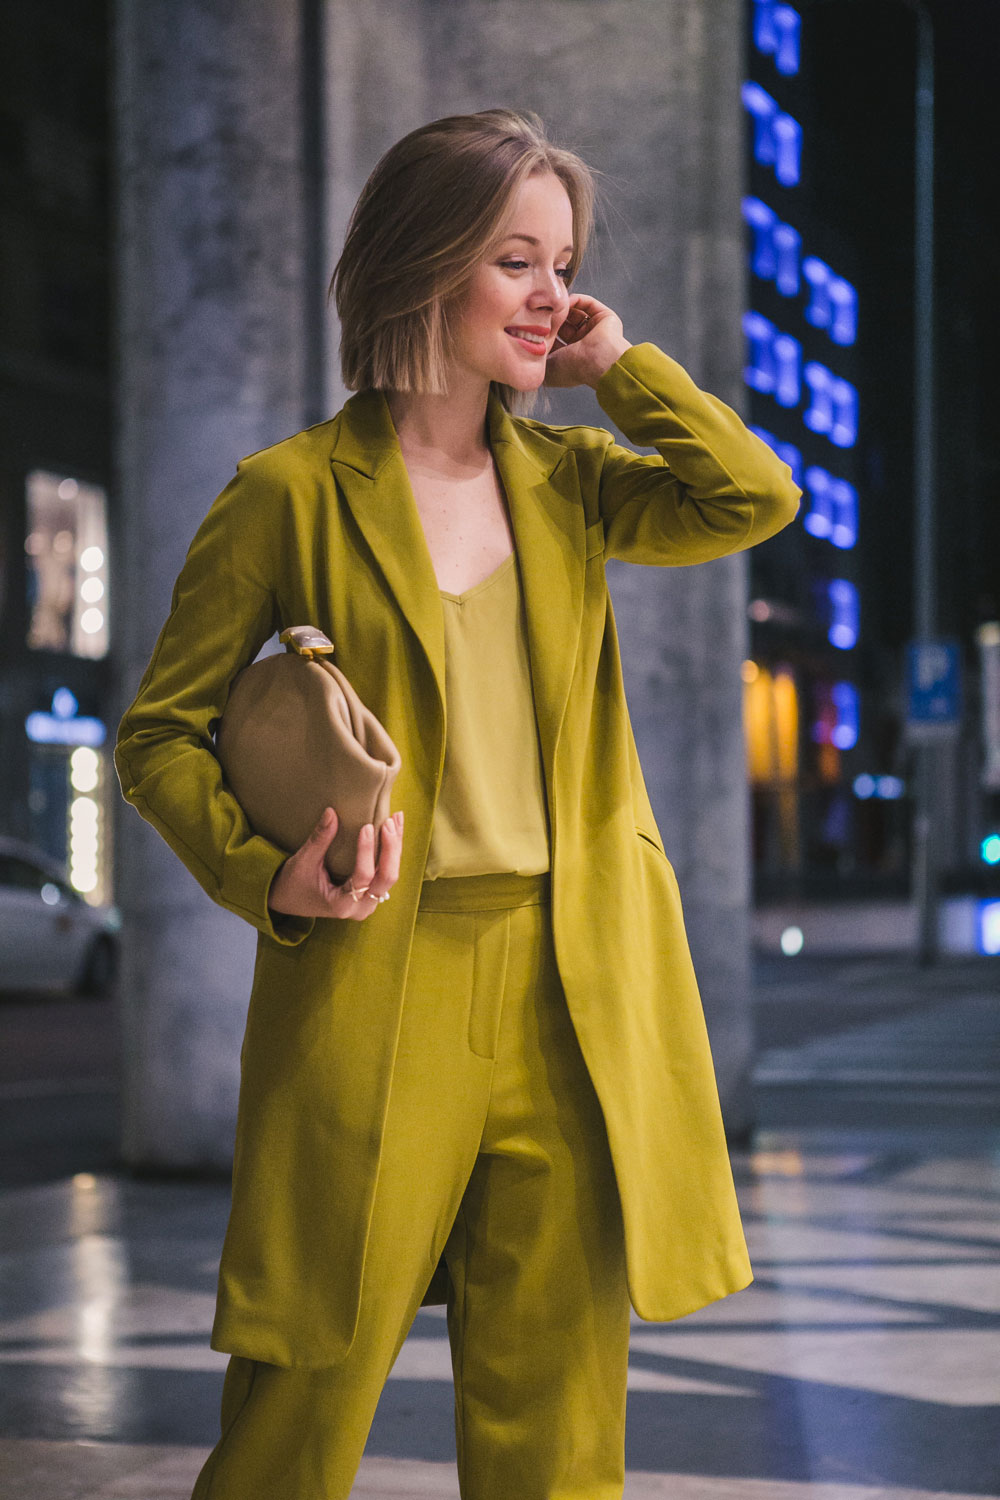 darya-kamalova-fashion-lifestyle-blogger-from-thecablook-on-san-pietro-all-orto-opening-party-in-milan-wears-asos-suit-marni-clutch-burberry-prosum-wedges-6974